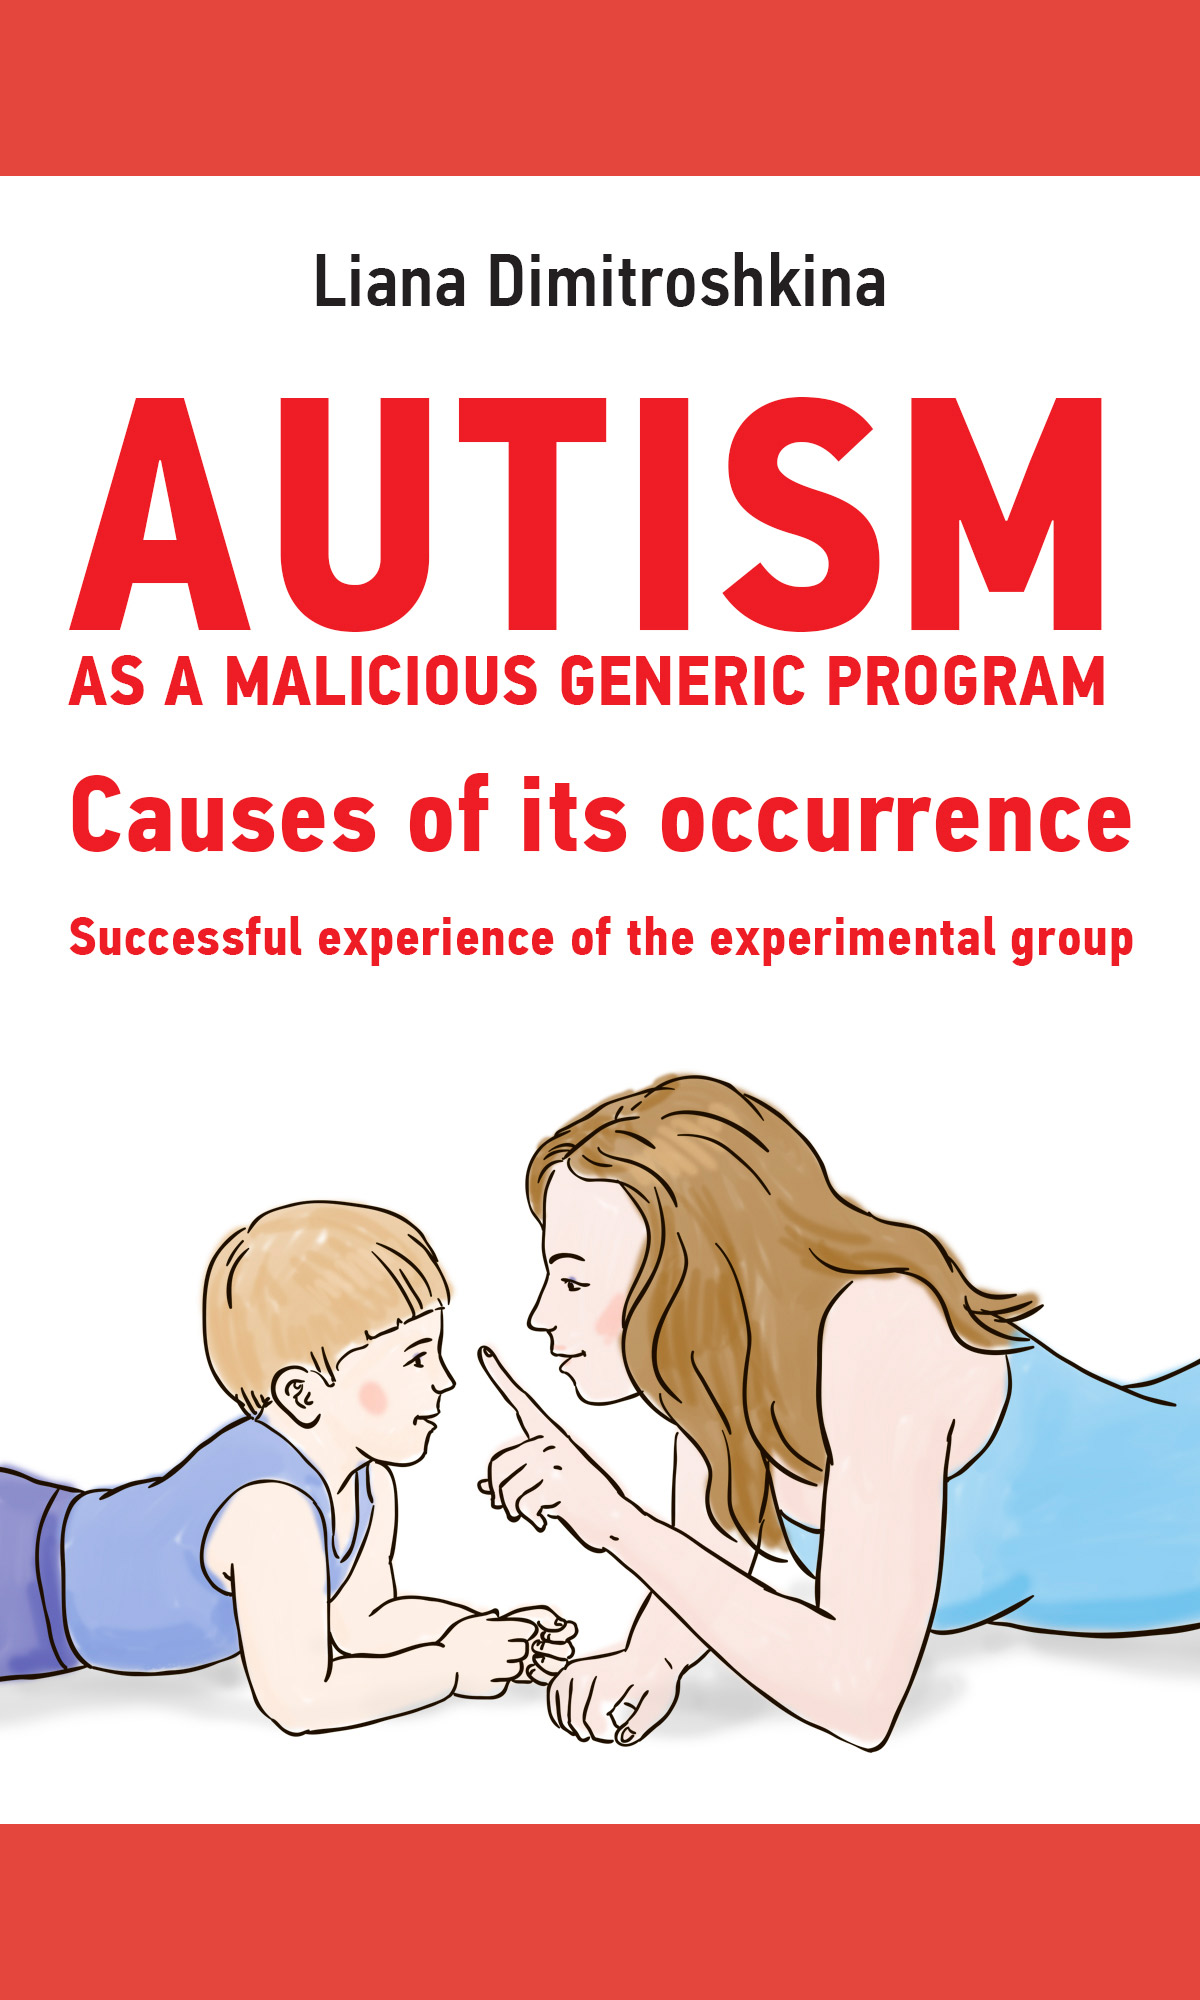 Лиана Димитрошкина Autism as a malicious generic program. Causes of its occurrence. Successful experience of the experimental group what constitutes an appropriate education for autistic children